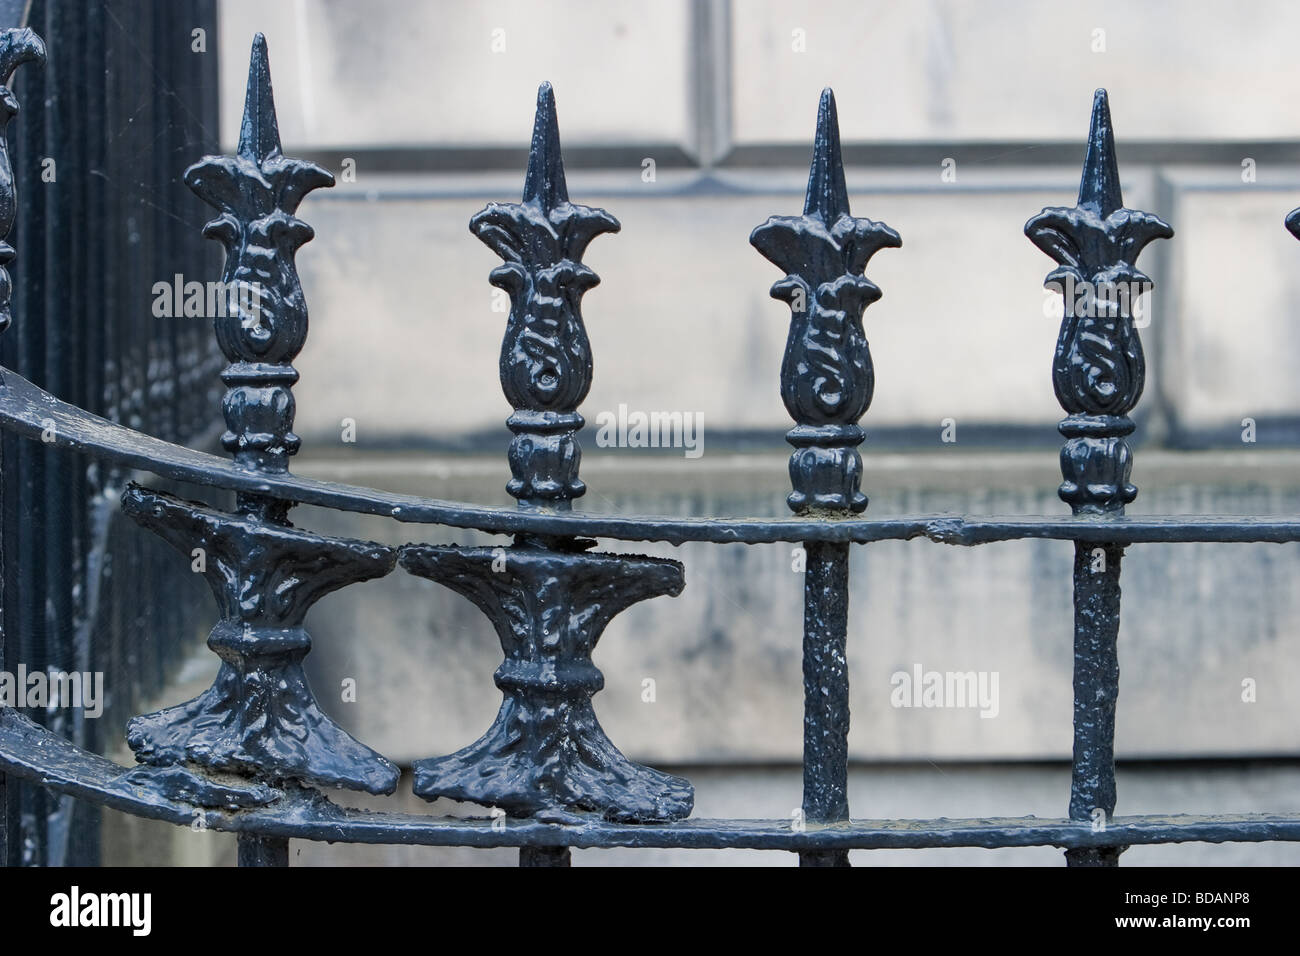 Old cast iron railings in an Edinburgh street - Stock Image